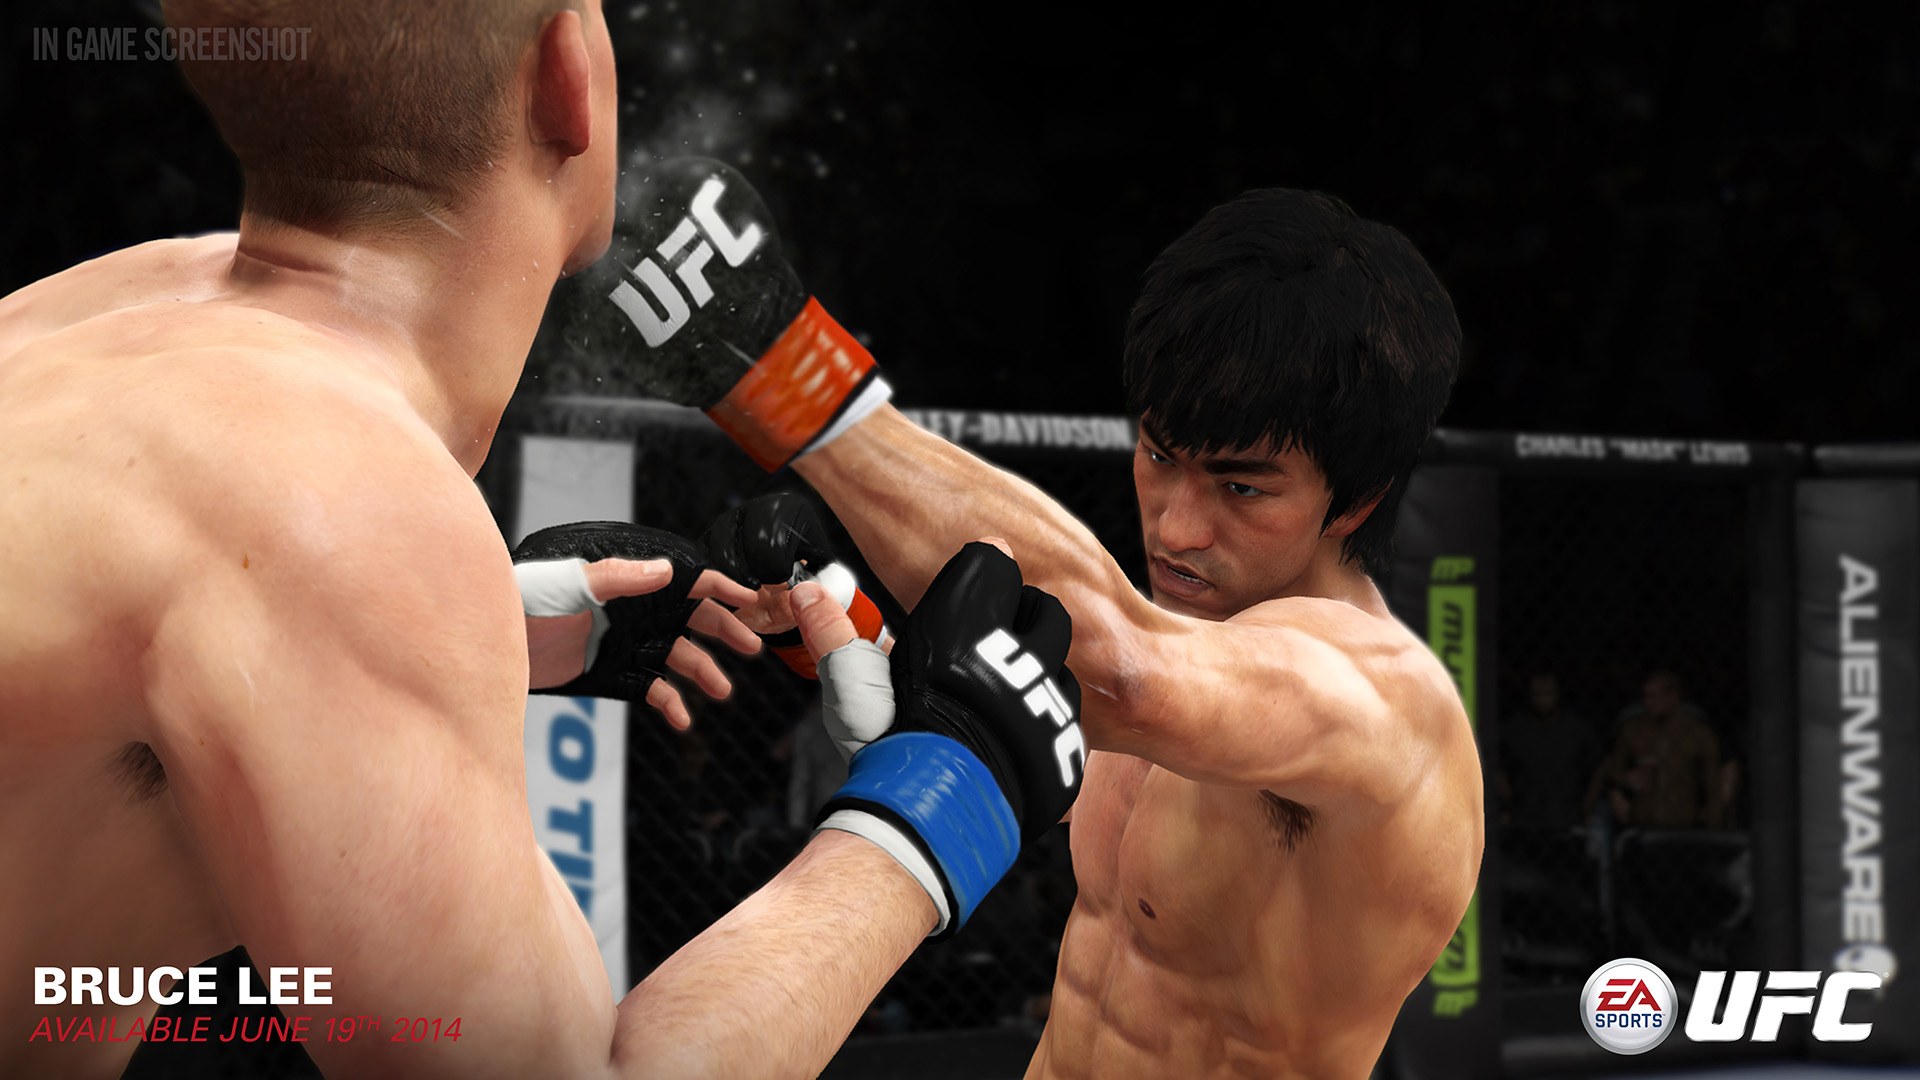 Recensione EA Sports UFC - Everyeye it